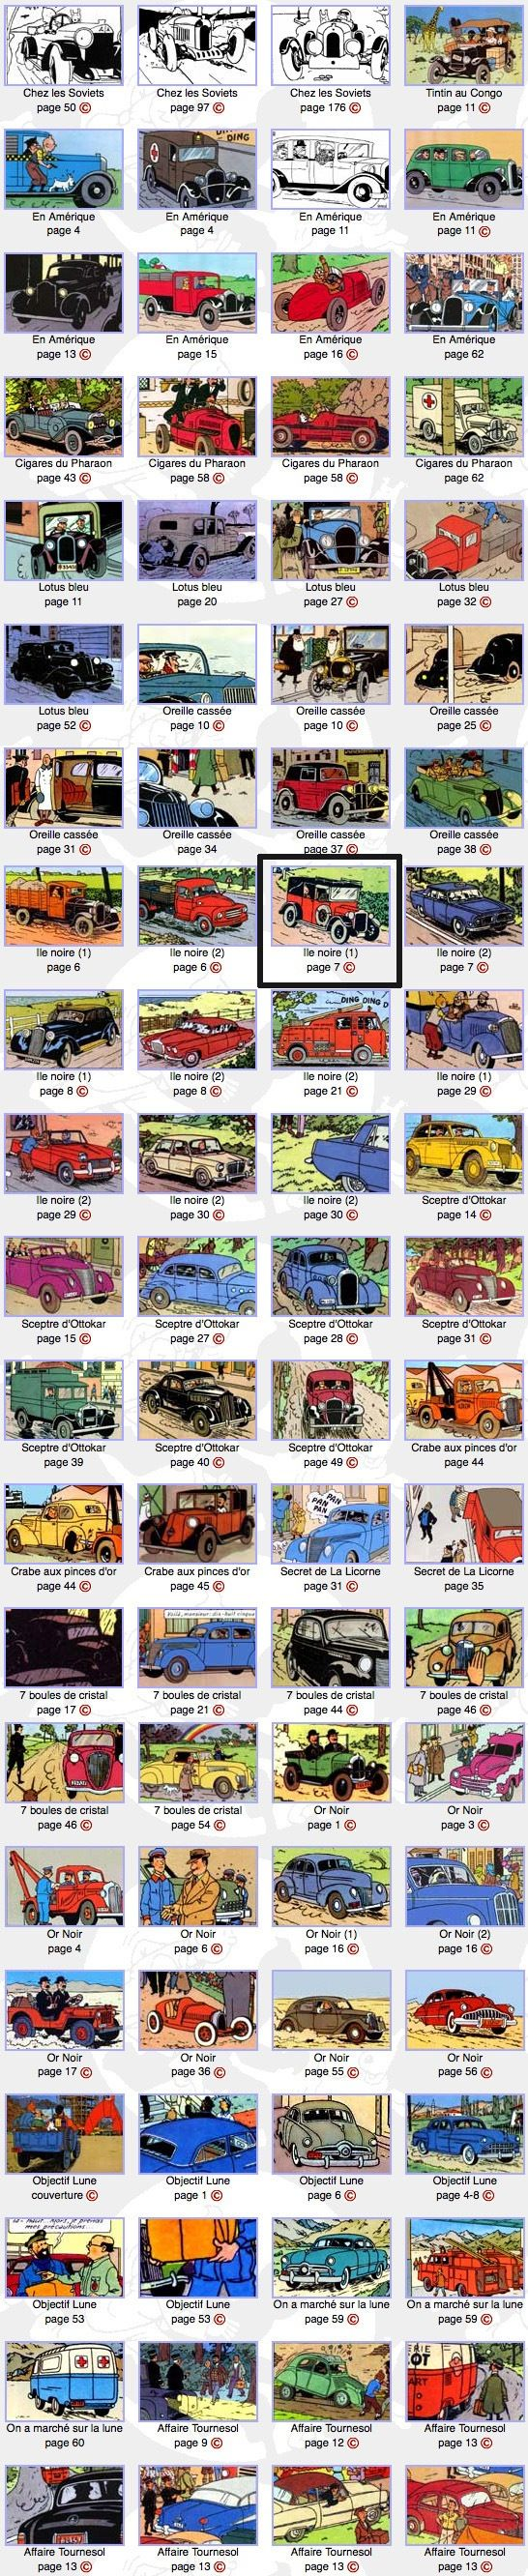 "Vintage Automobiles in the ""Adventures of Tintin"""